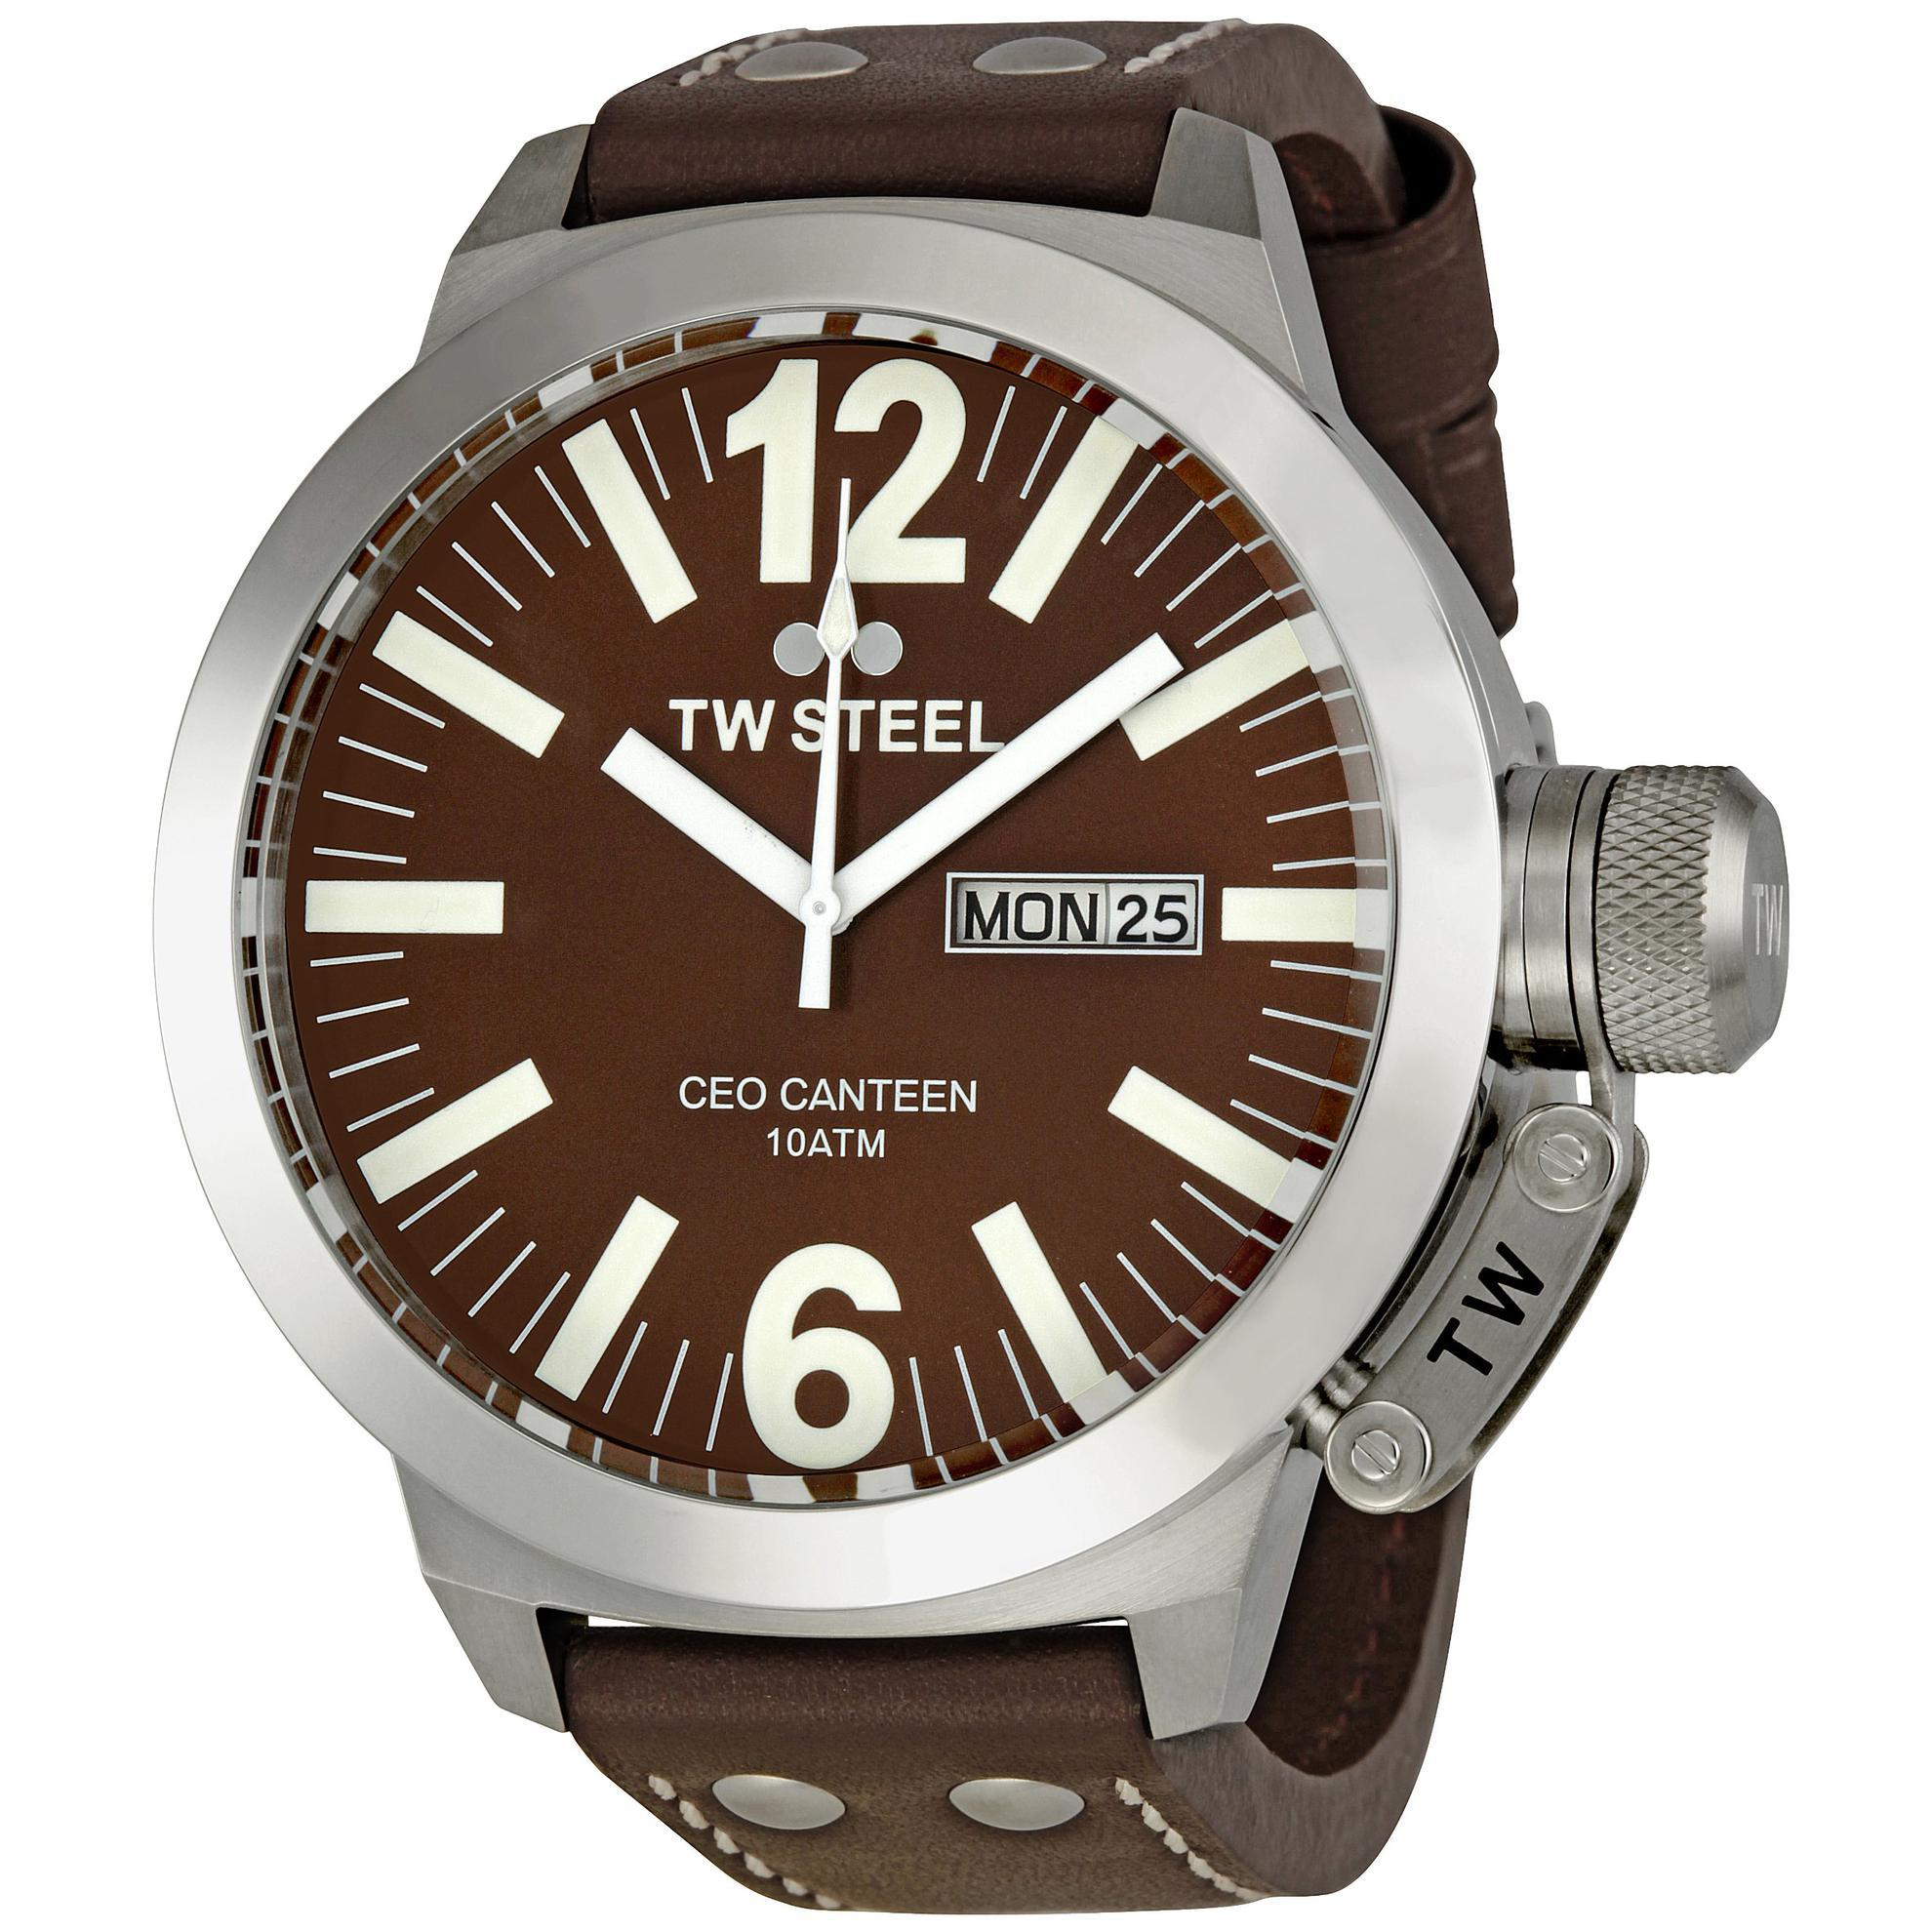 CE1010 TW Steel CEO Canteen Stainless Steel Brown Dial Leather Strap